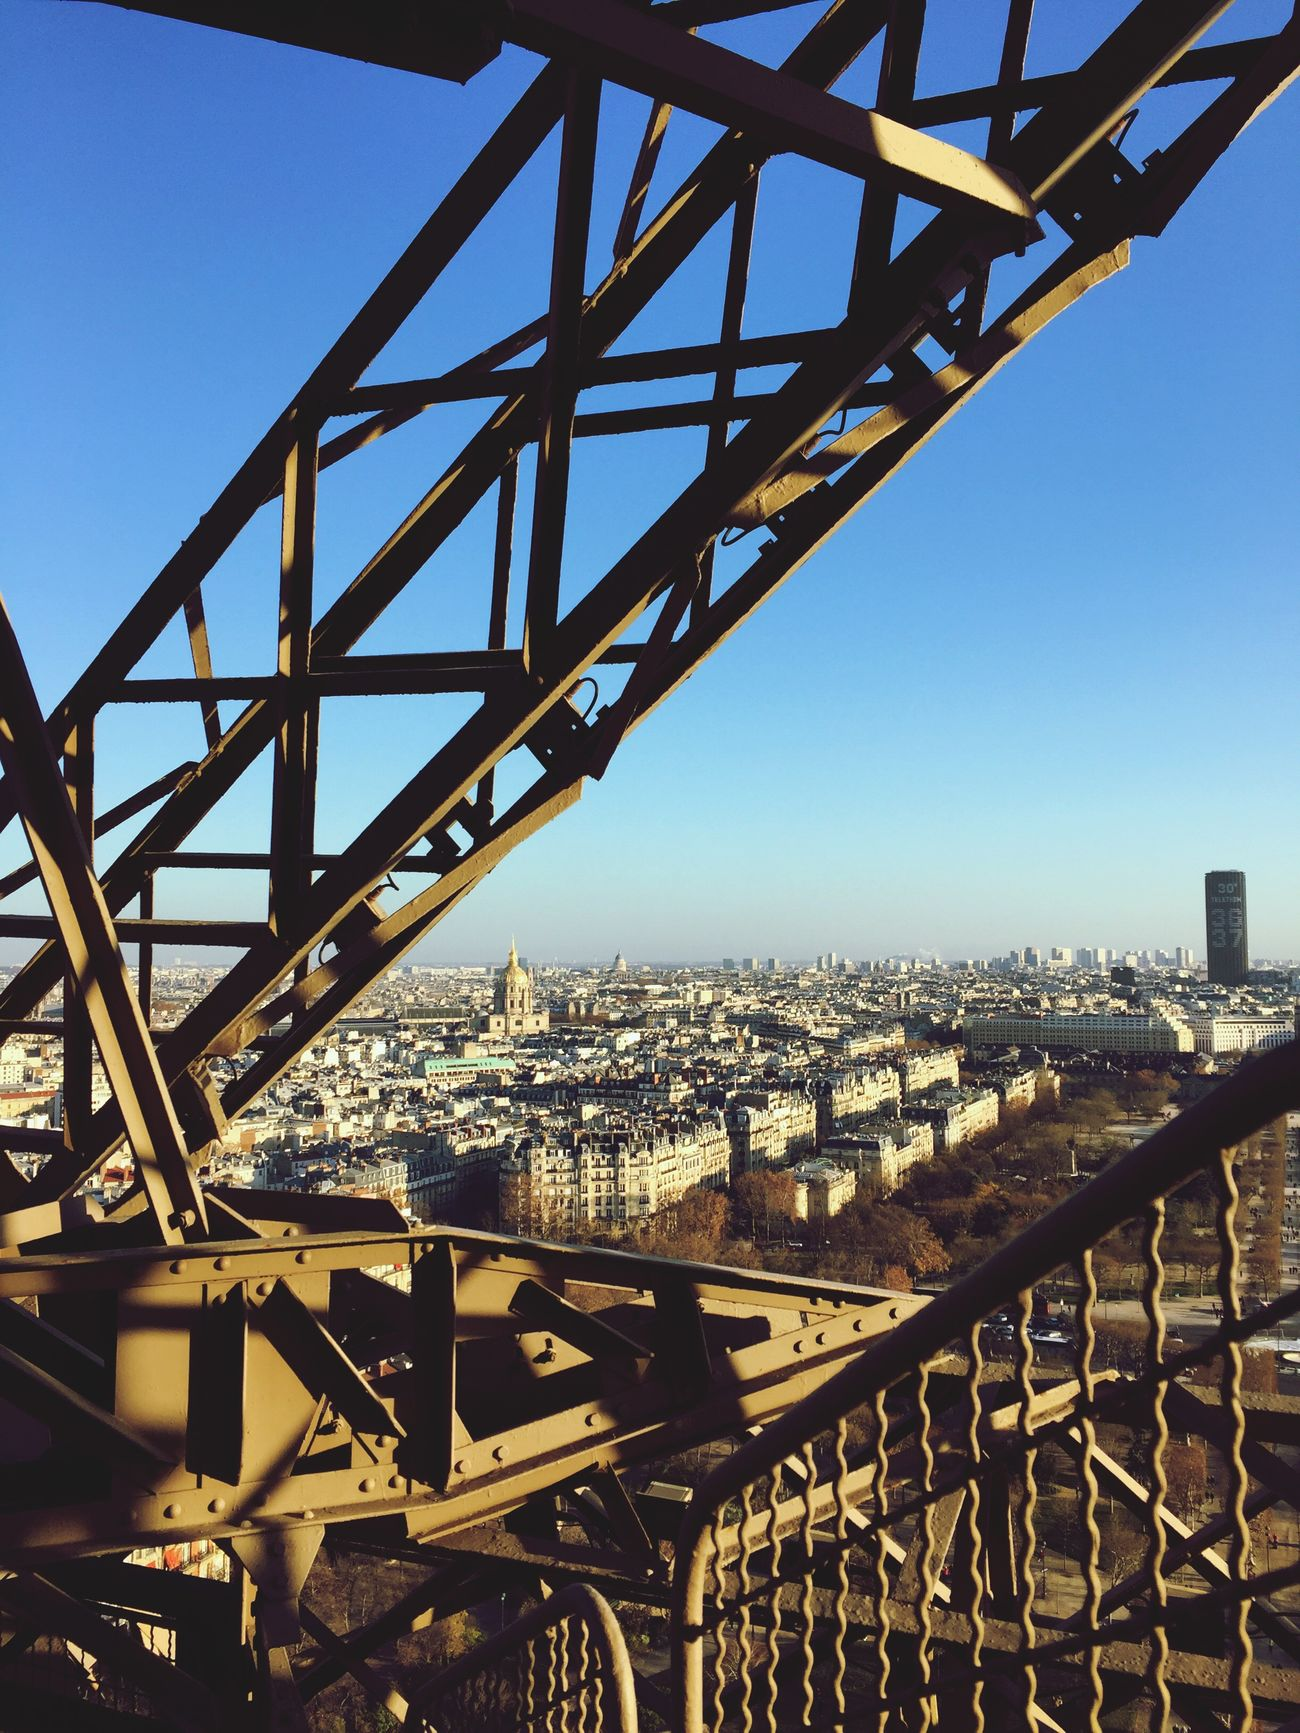 Architecture Paris Tourism Eyemphotography Cityscape From Where I Stand Streetphotography City Eyem Best Shots Tower